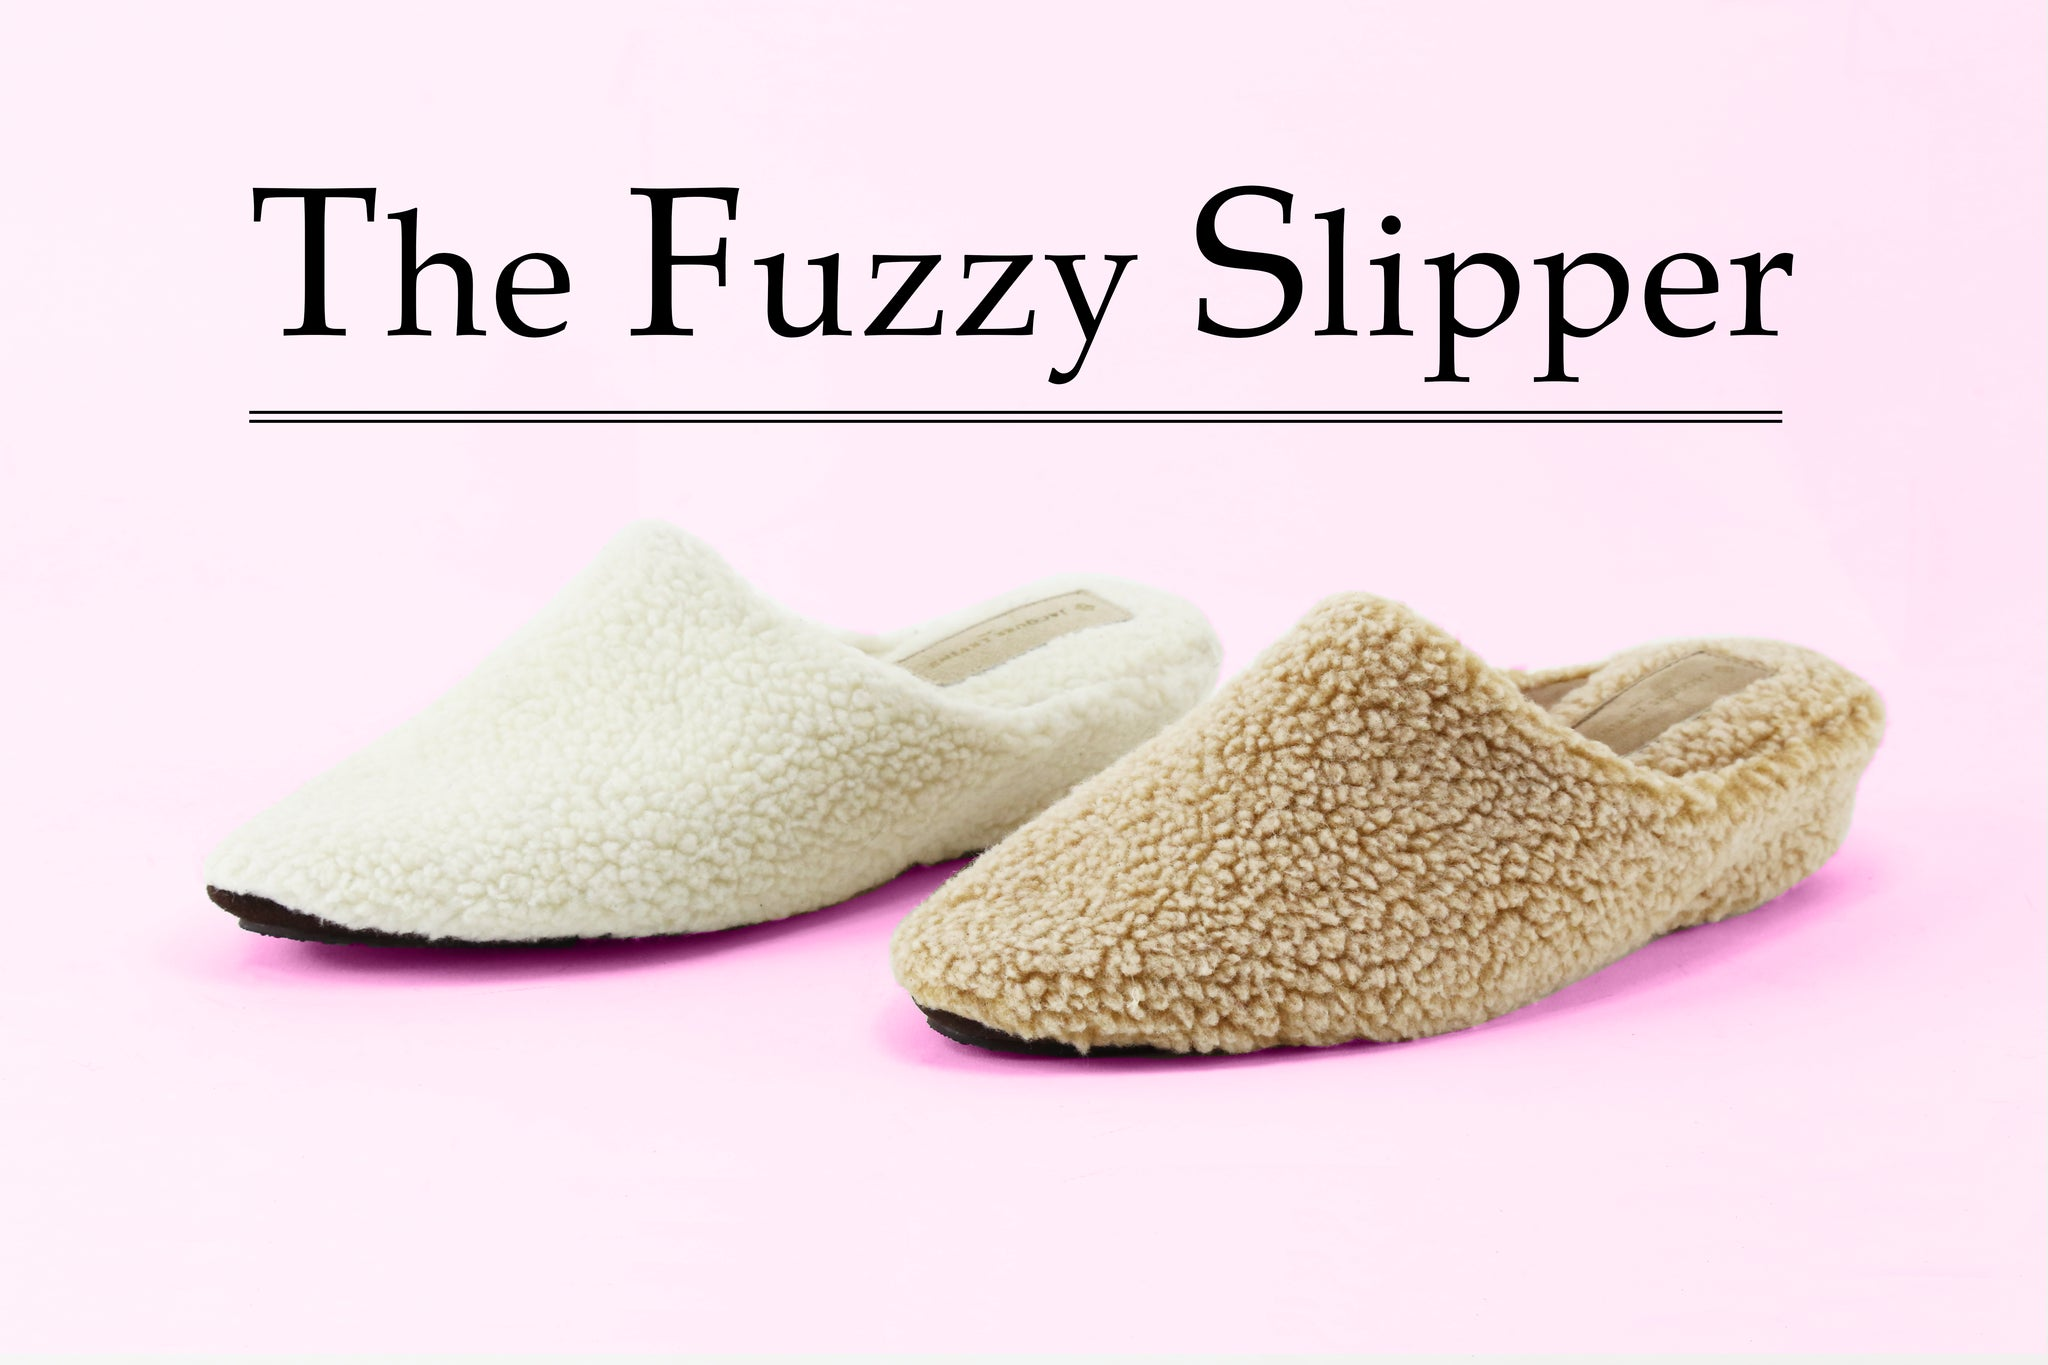 Jacques Levine #1221 Slippers